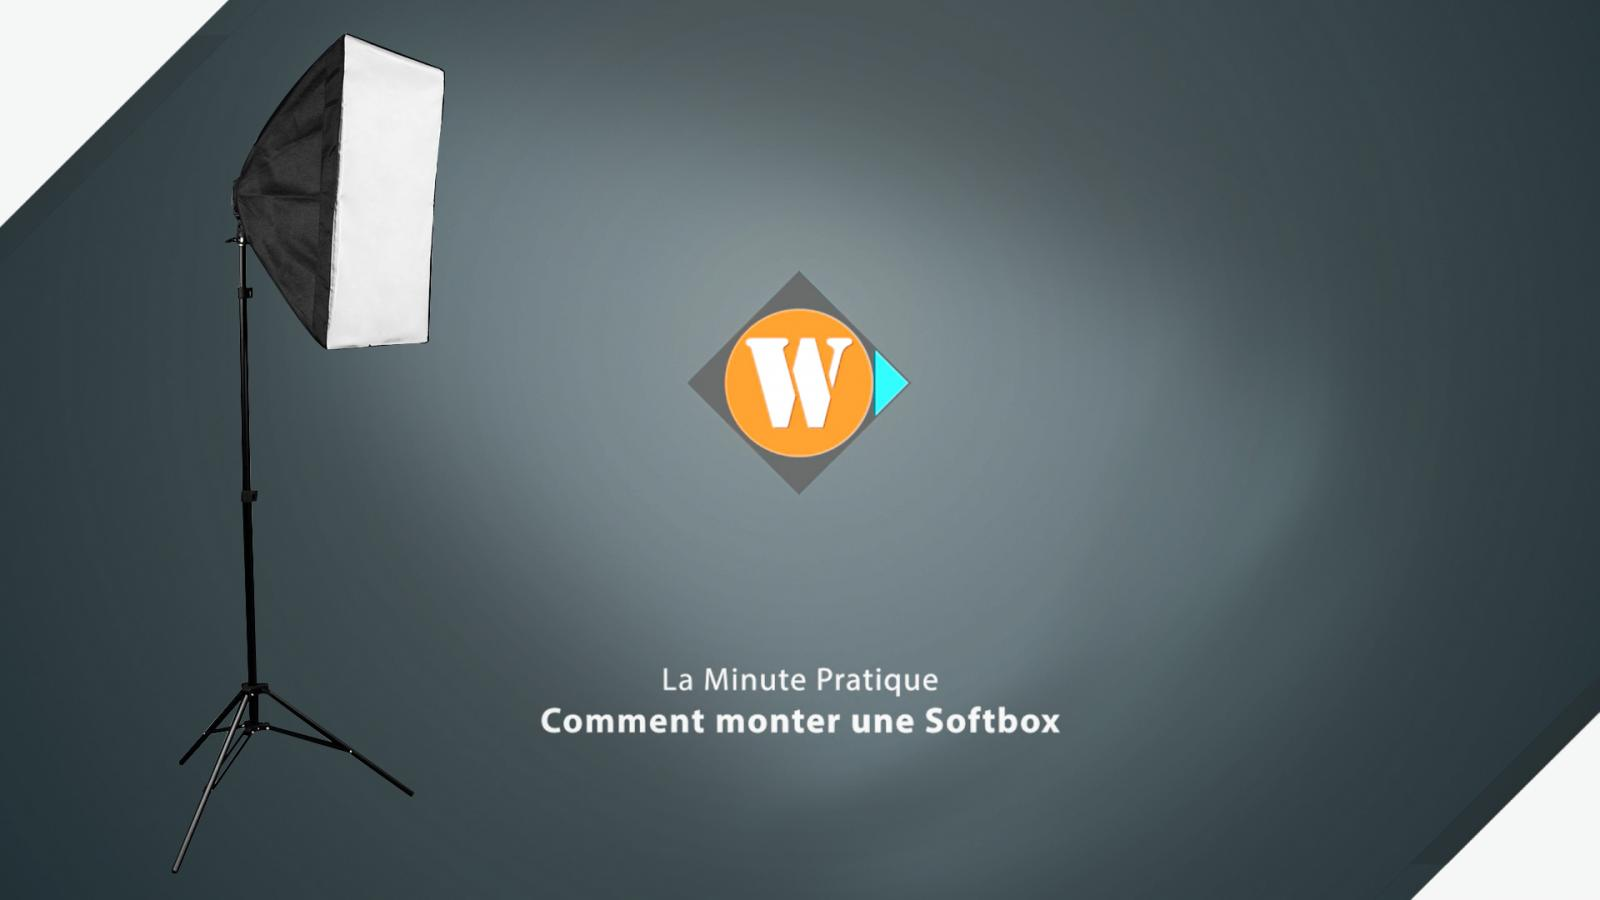 Comment monter une softbox facilement !